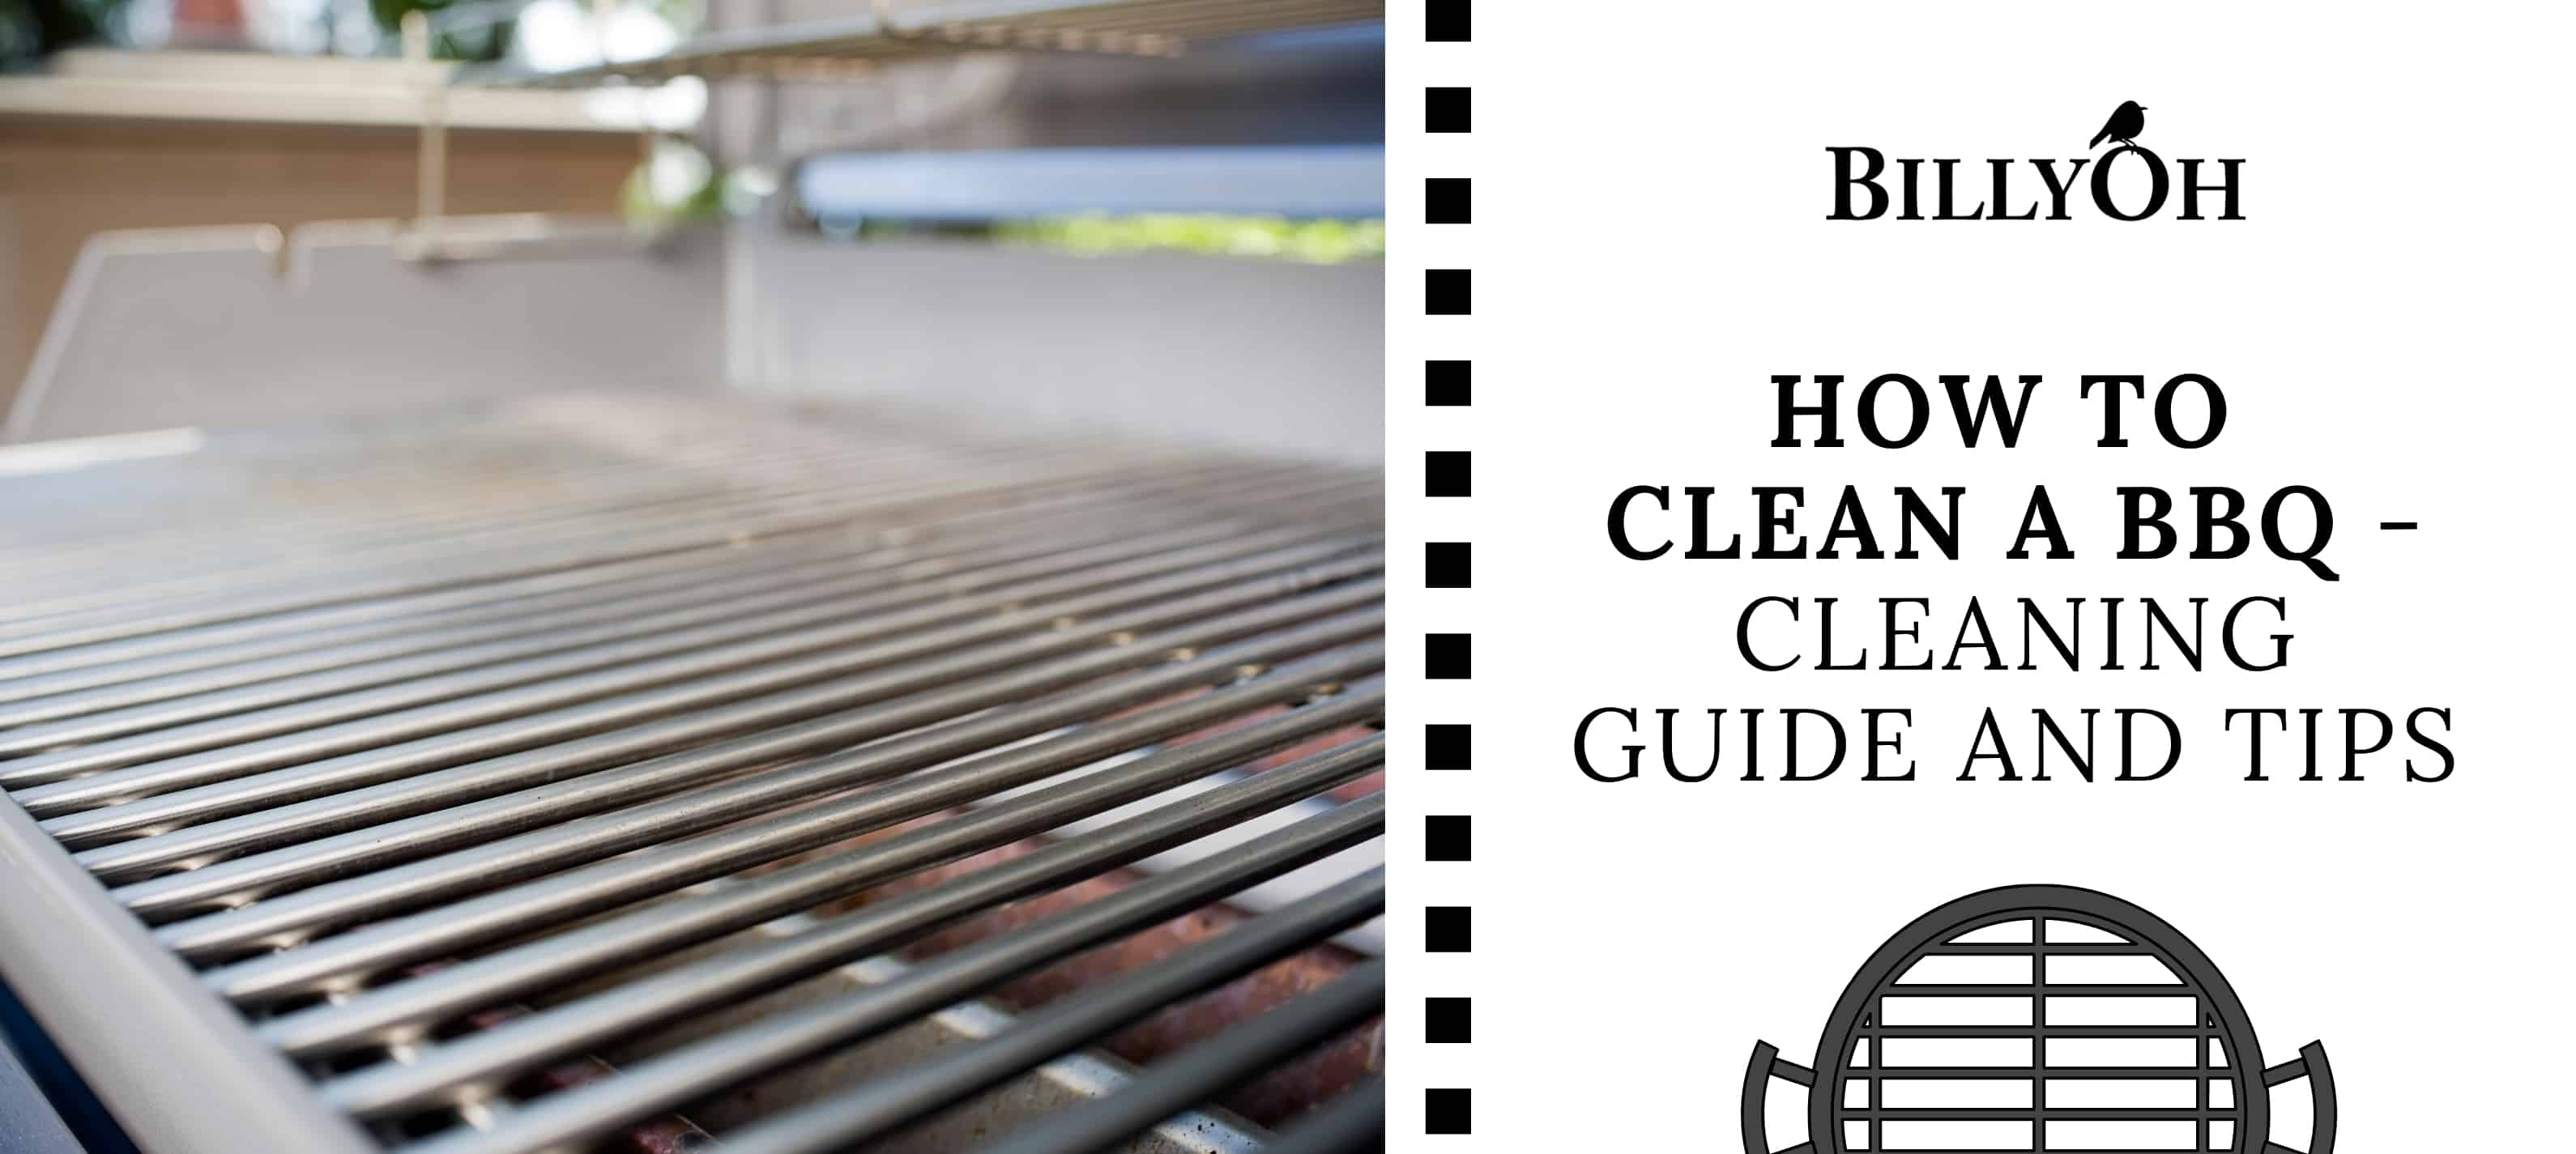 'How to Clean a BBQ' banner on white cartoon film reel with a clean BBQ grill rack